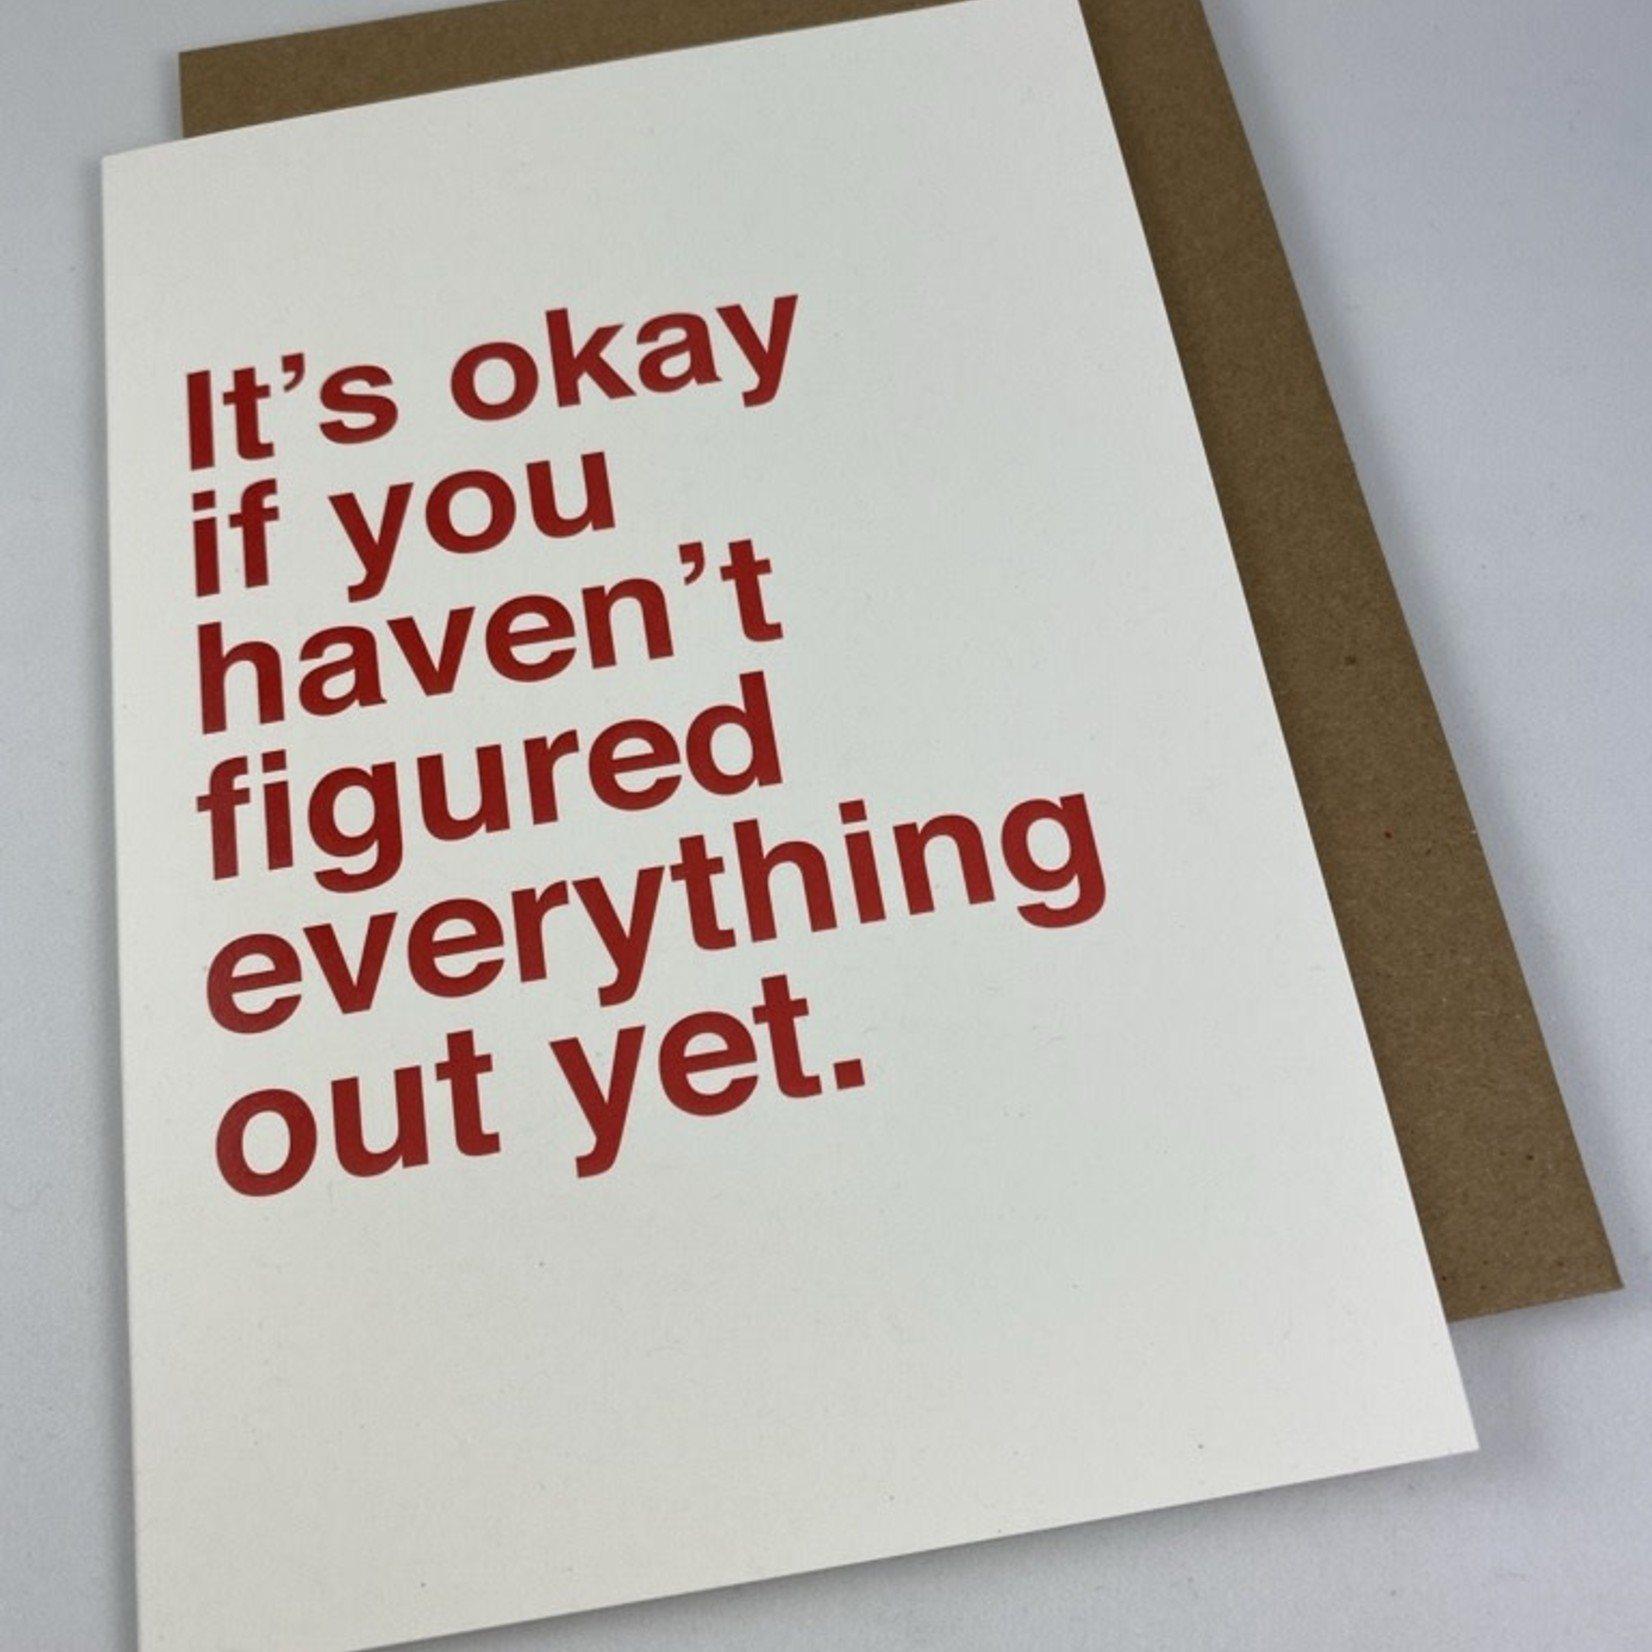 Sad Shop Okay Figured Everything Out Yet Greeting Card